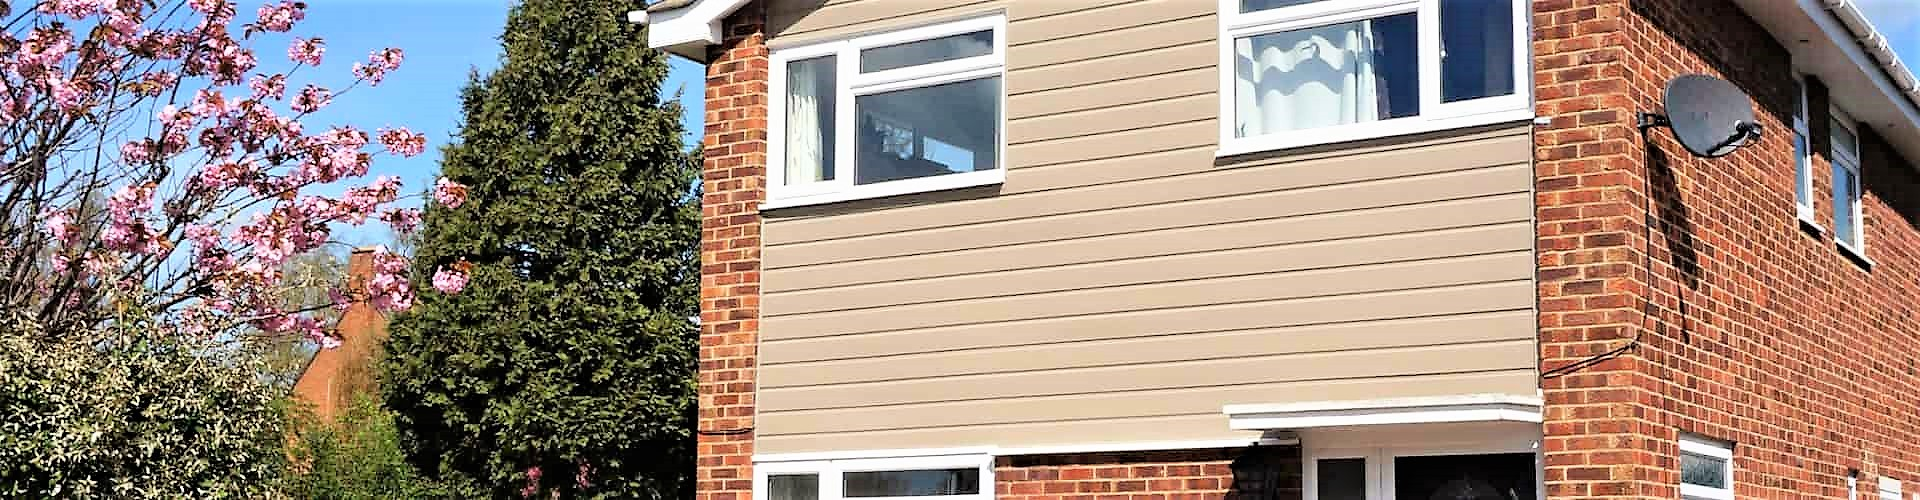 Weatherproofing with uPVC Cladding